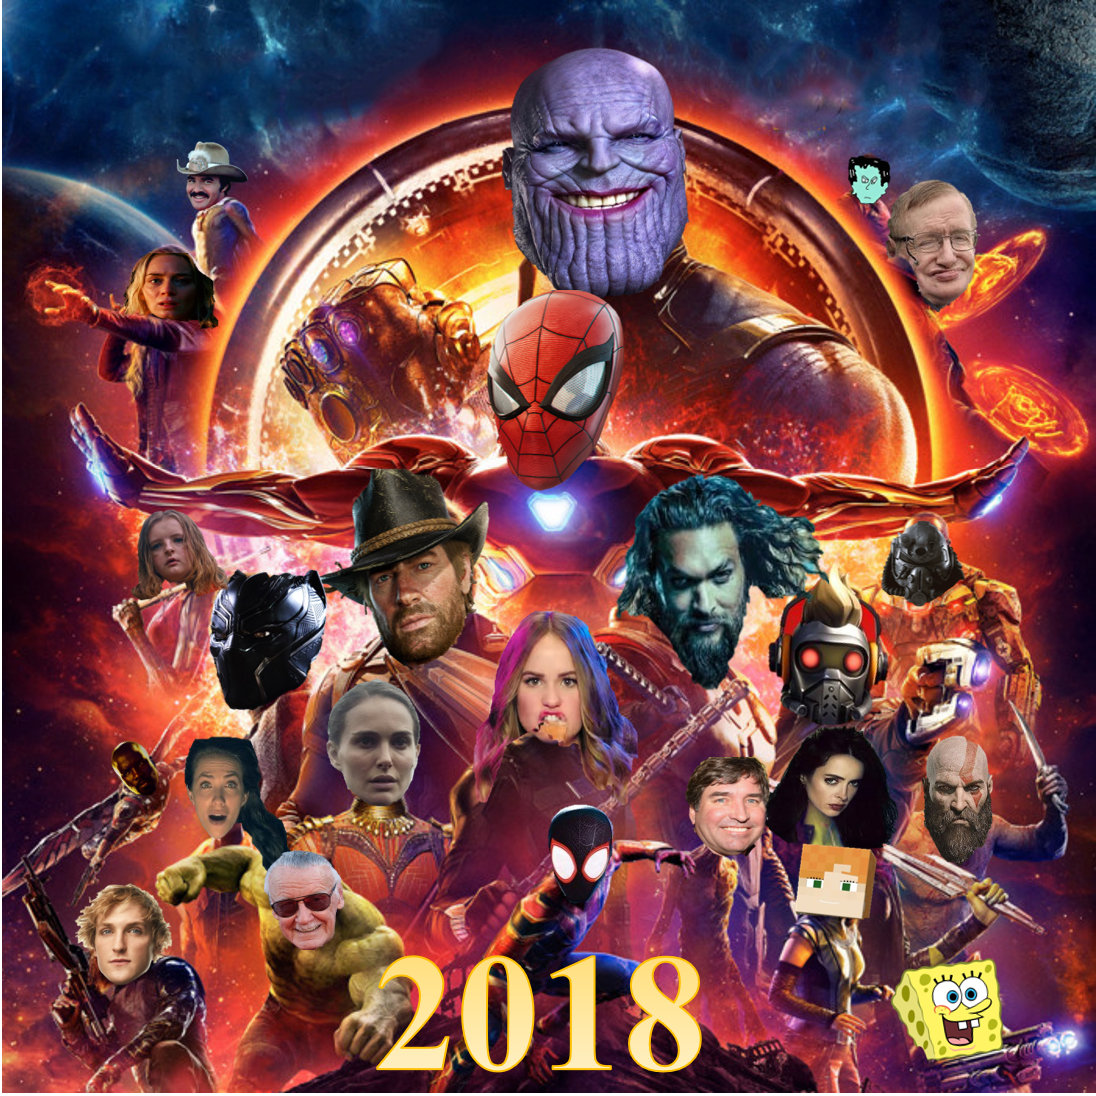 2018 one